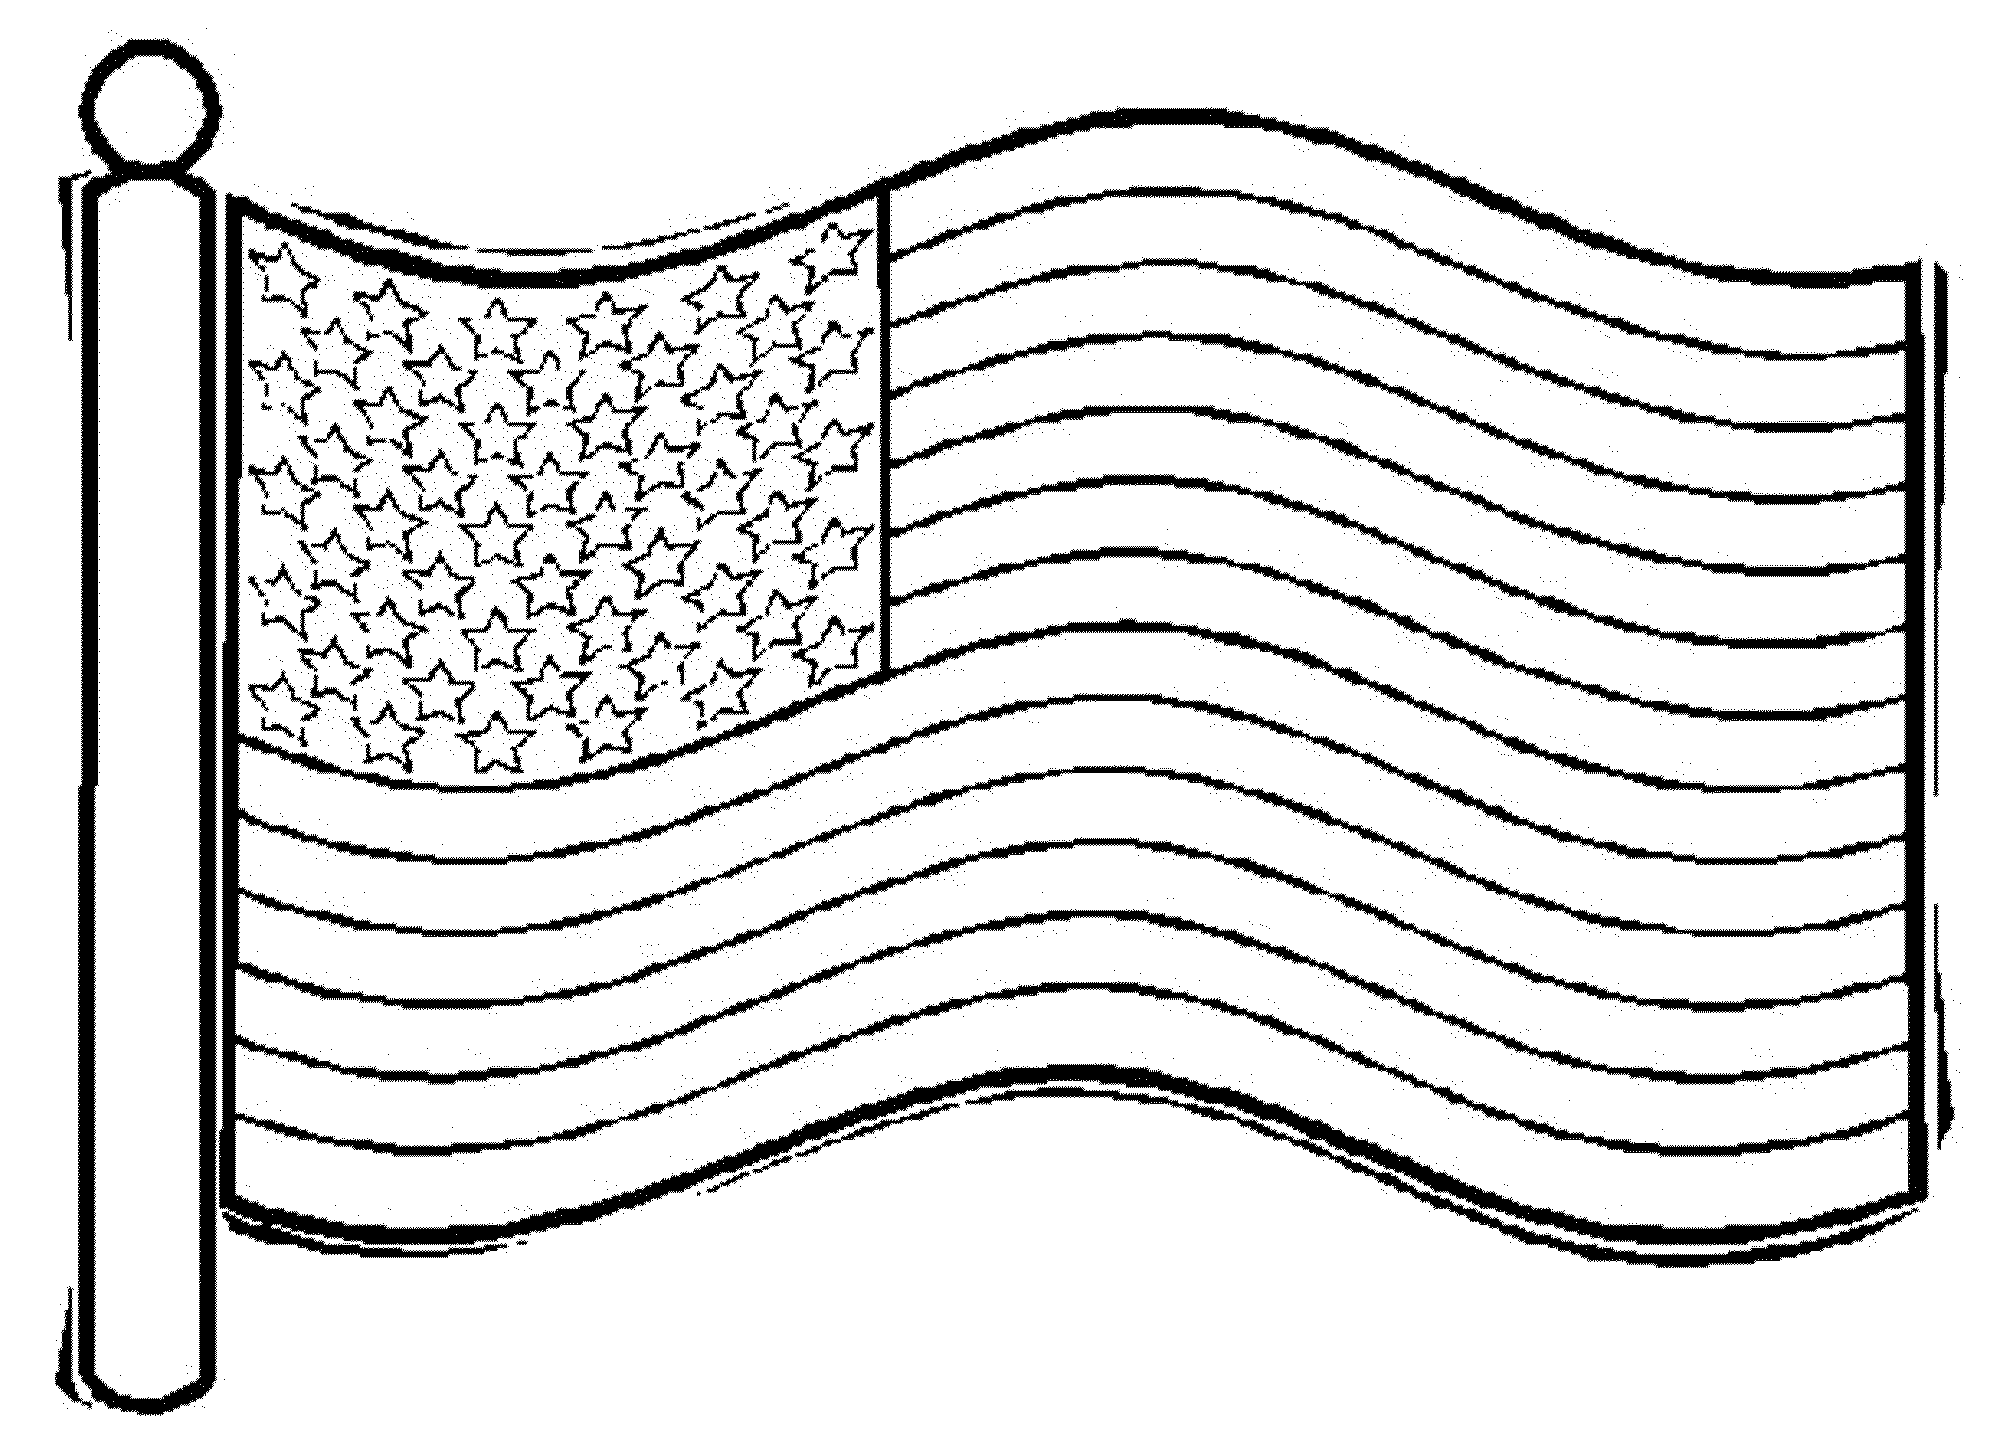 american flag coloring book american flag coloring pages 2020 z31 coloring page book american flag coloring